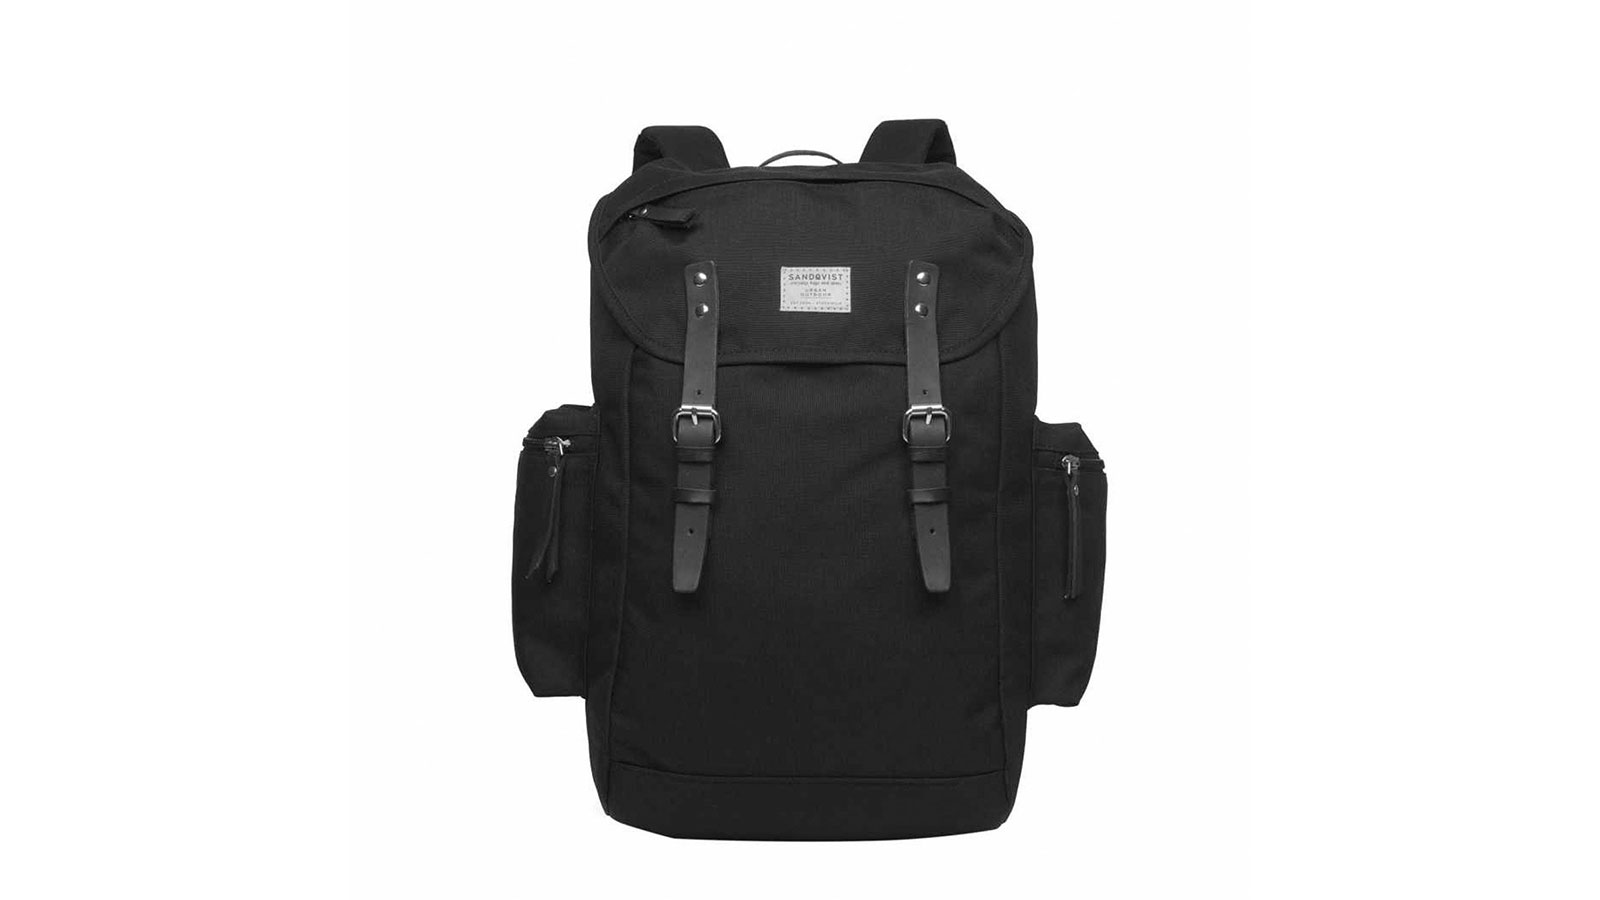 Sandqvist Lars-Göran Backpack | best men's backpacks